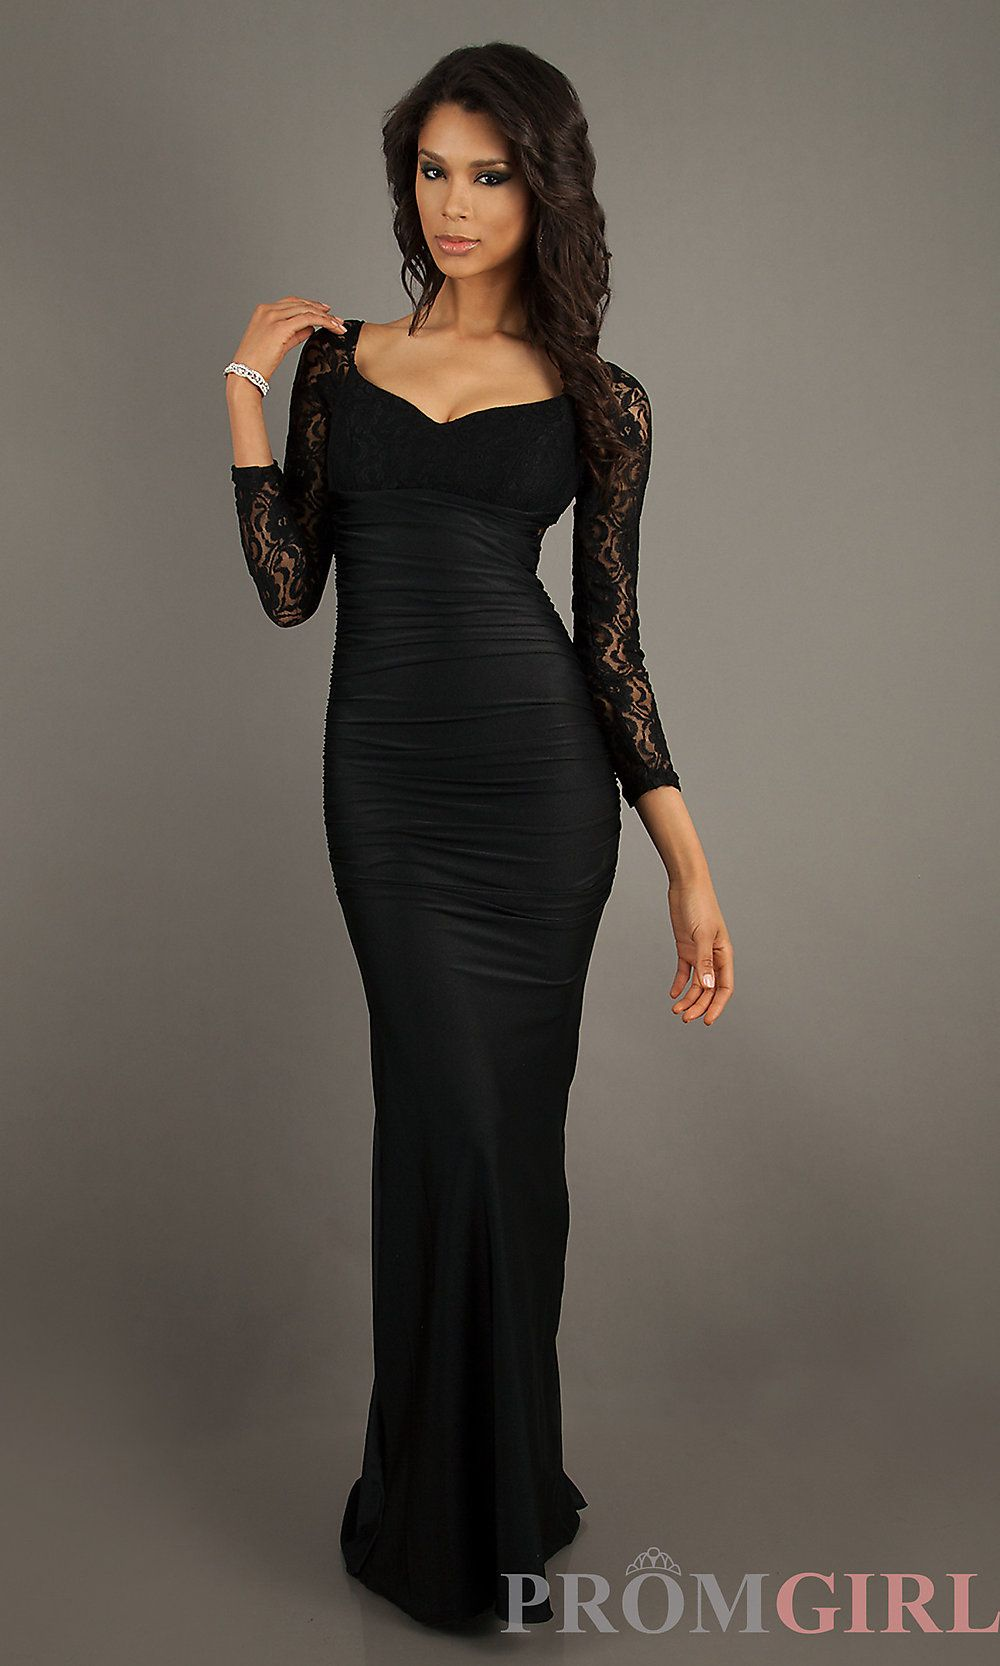 Long Sleeve Prom Dresses, Atria Lace Formal Prom Gowns- #prom ...